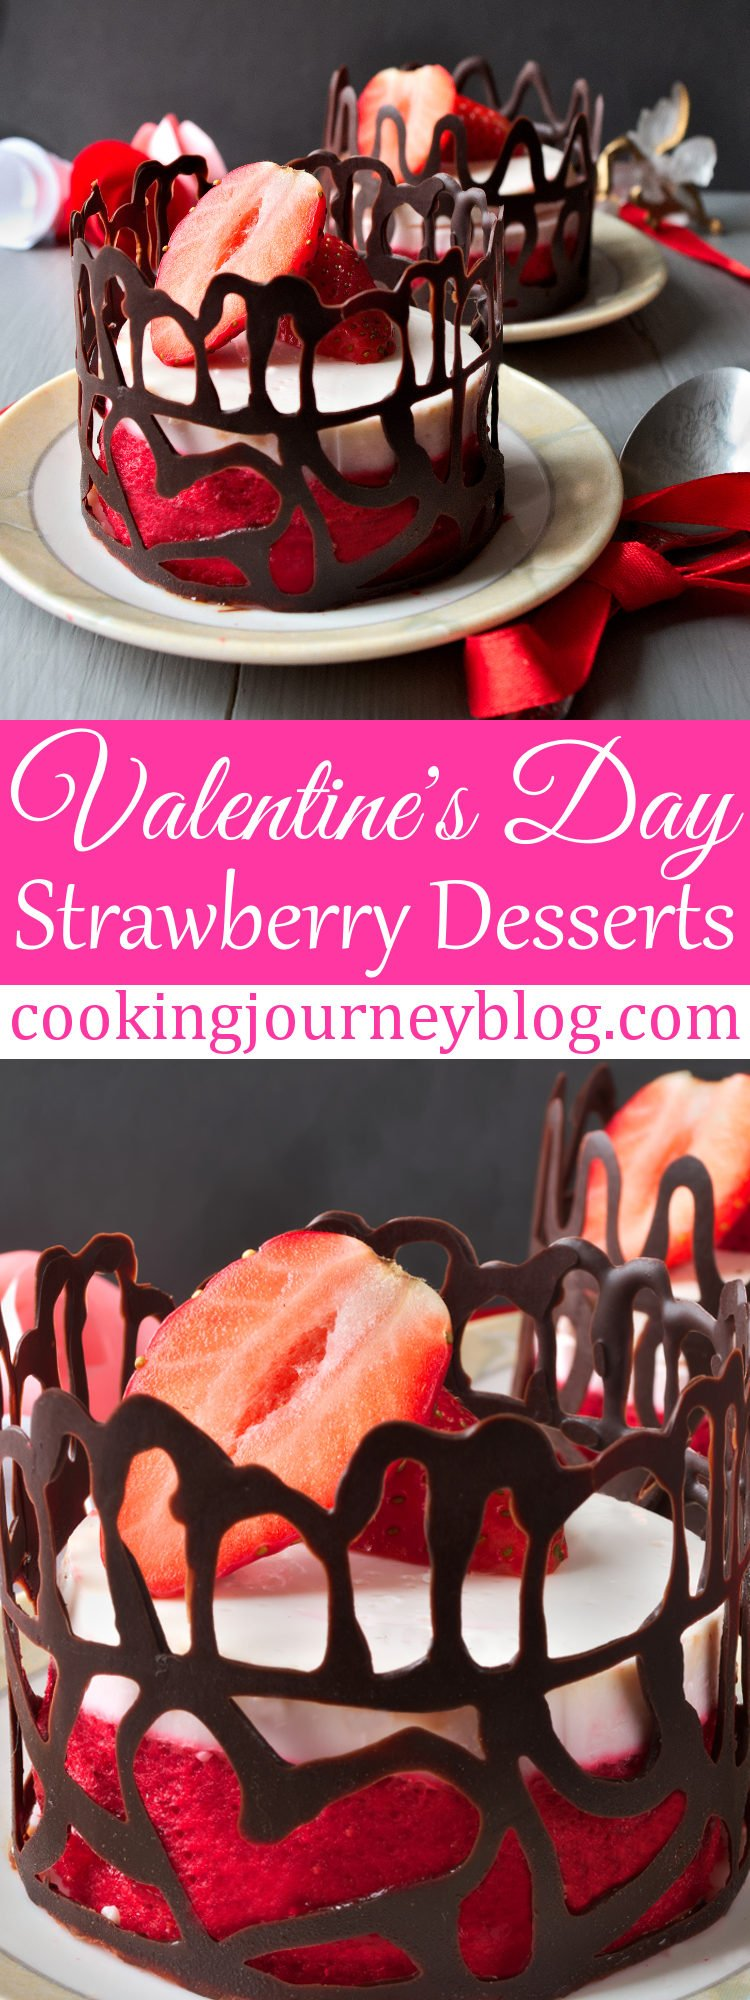 Strawberry desserts are so popular on Valentine's day! This is one of Valentines desserts that is healthy, tasty and easy to make. Surprise your loved ones with these elegant strawberry no bake desserts! #strawberrydessert #chocolate #valentines